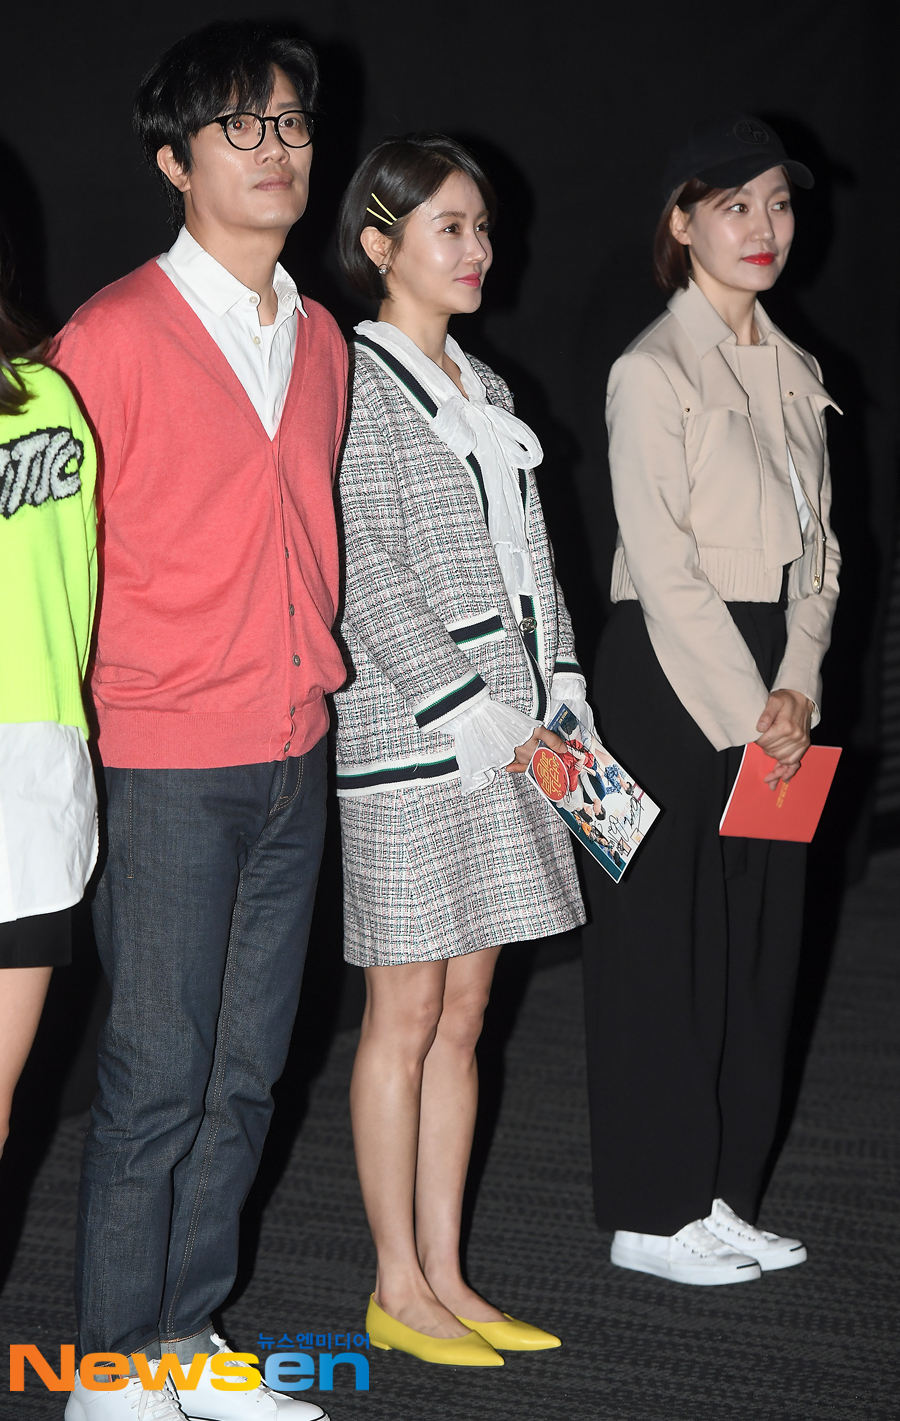 <p>The movie sun kiss family(Director Kim Ji Hye) stage is 3 30 afternoon, Gangnam-GU, Seoul Megabox COEX on the open.</p><p>This day, Hwang Woo-seul-hye have attended.</p>